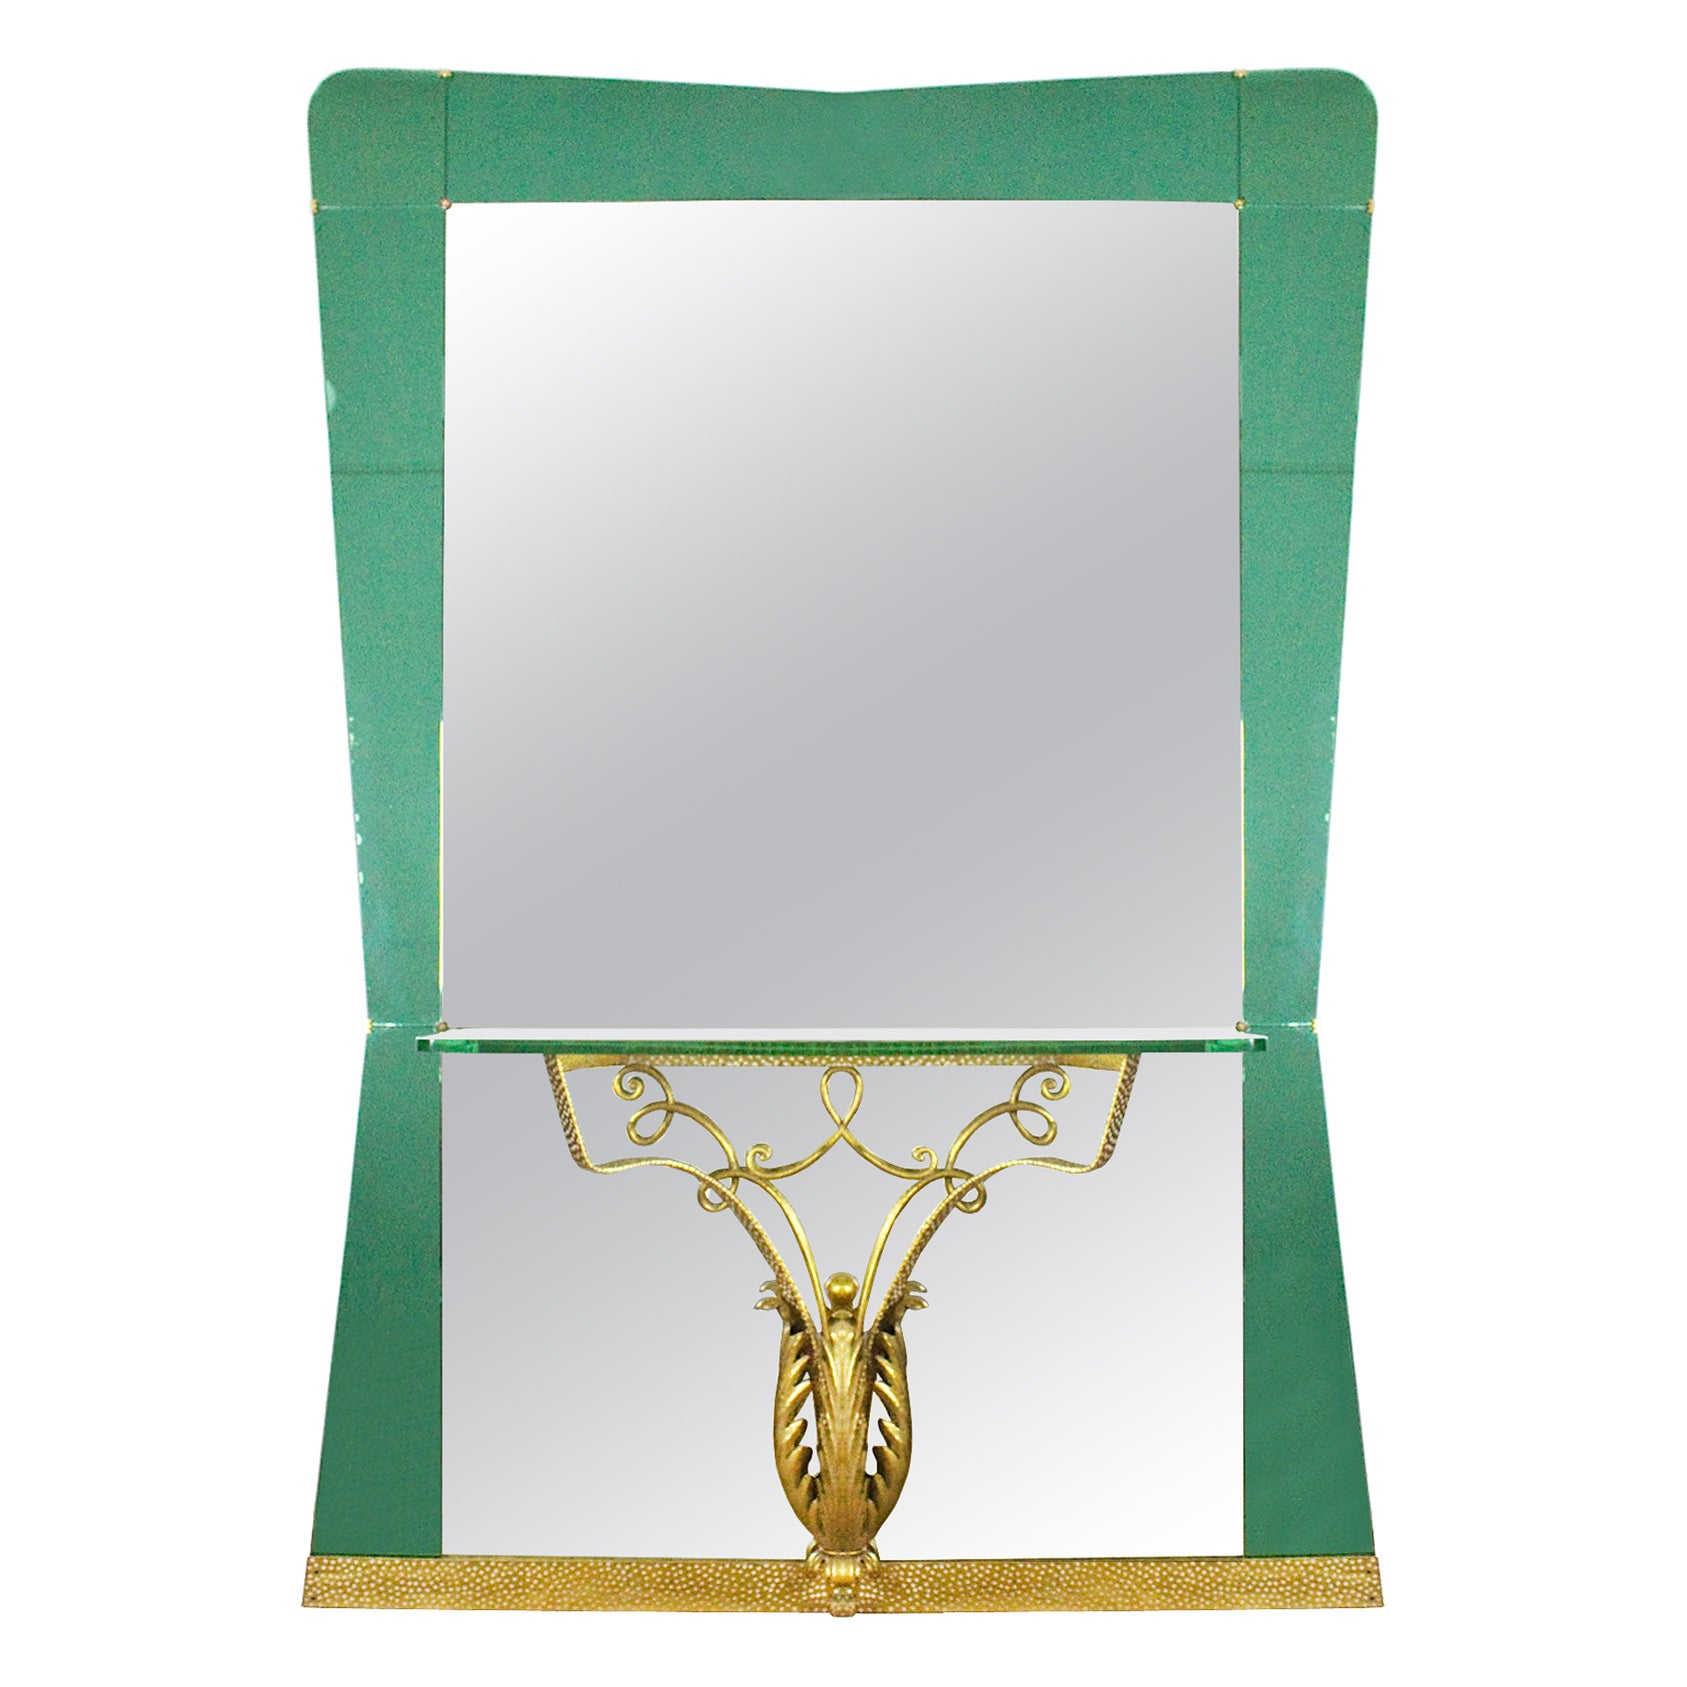 1940s Large Mirror-Console, Green Mirror and Metal by Pier Luigi Colli, Italy